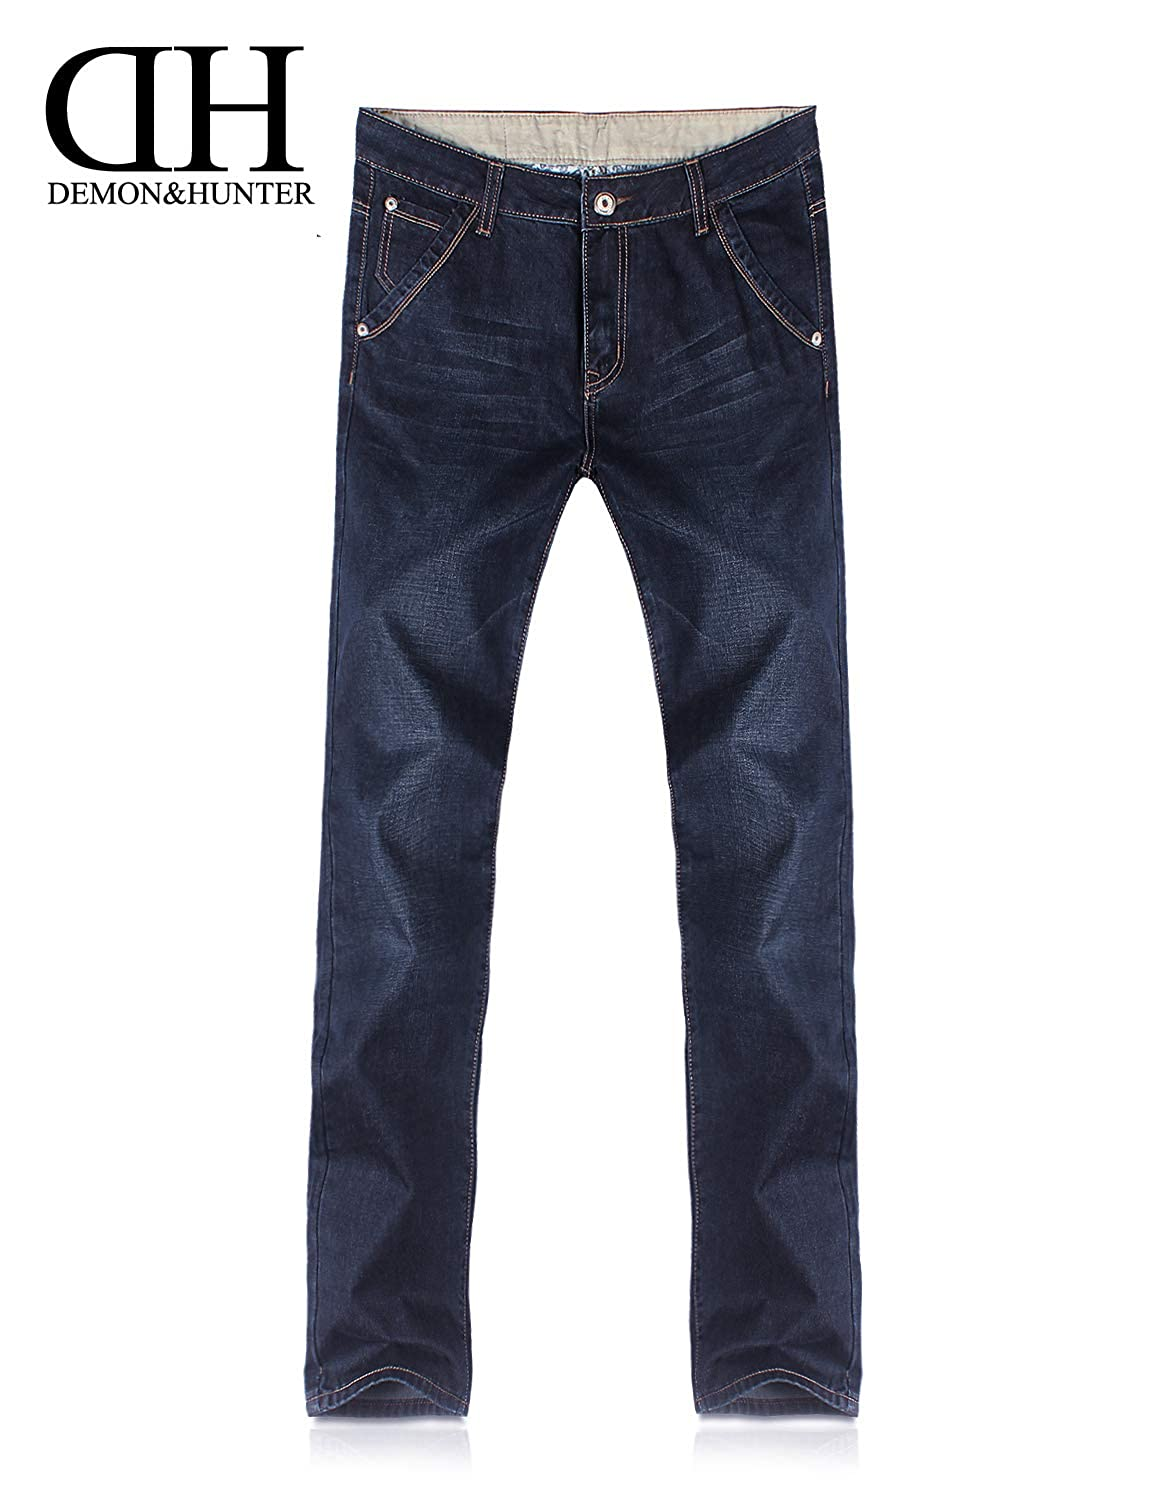 Demon/&Hunter 809 Relaxed Series Mens Loose Fit Relaxed Jeans